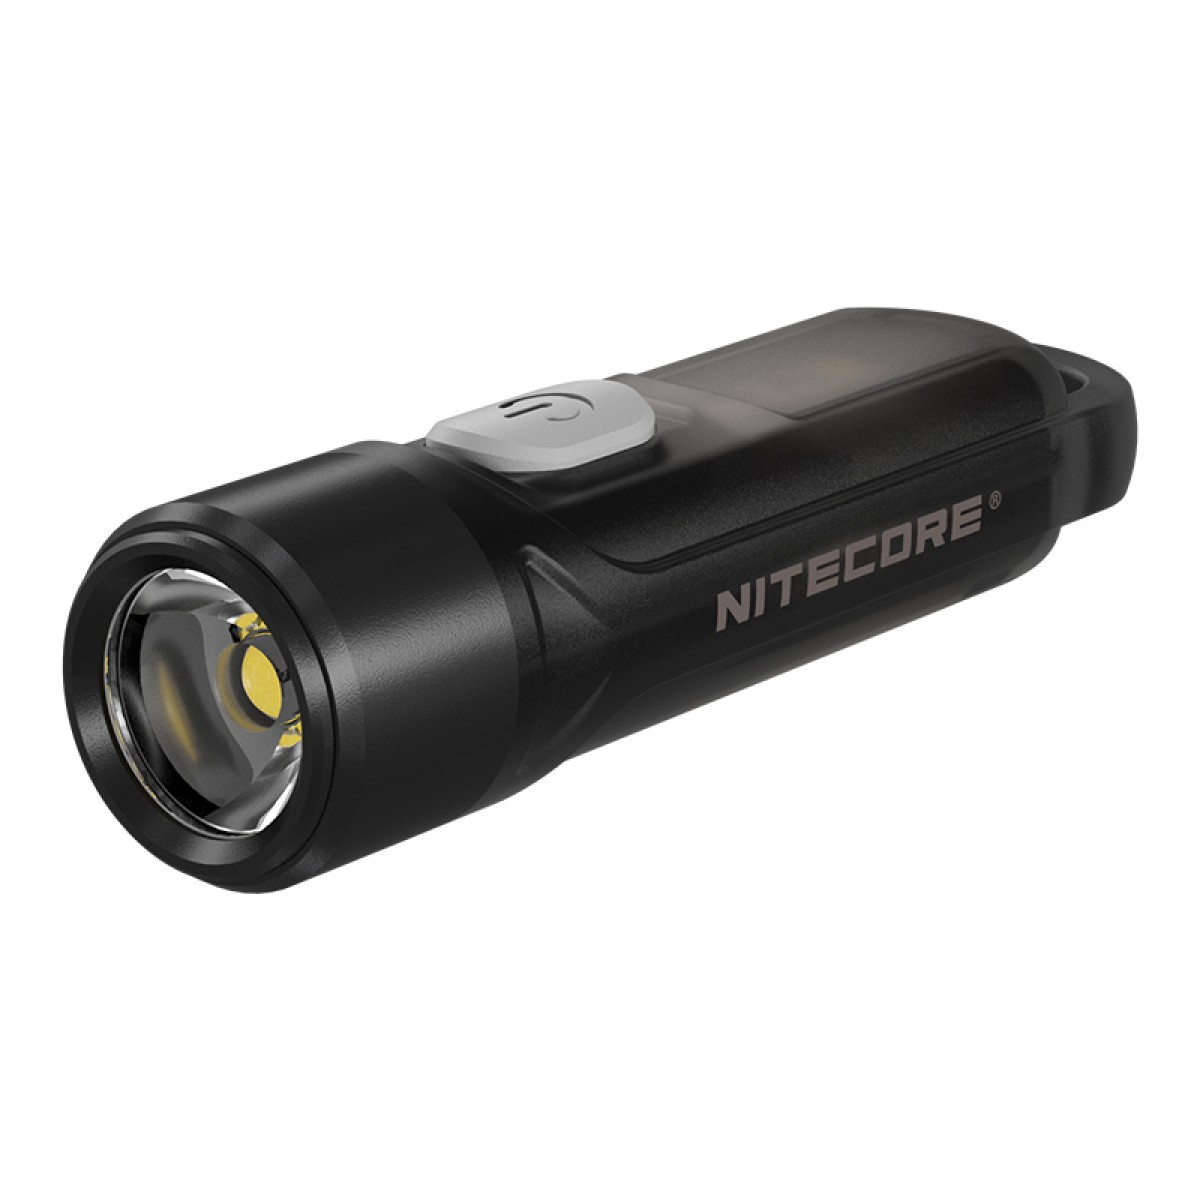 Nitecore TIKI LE w RED & BLUE LED Keychain 300L Rechargeable Flashlight